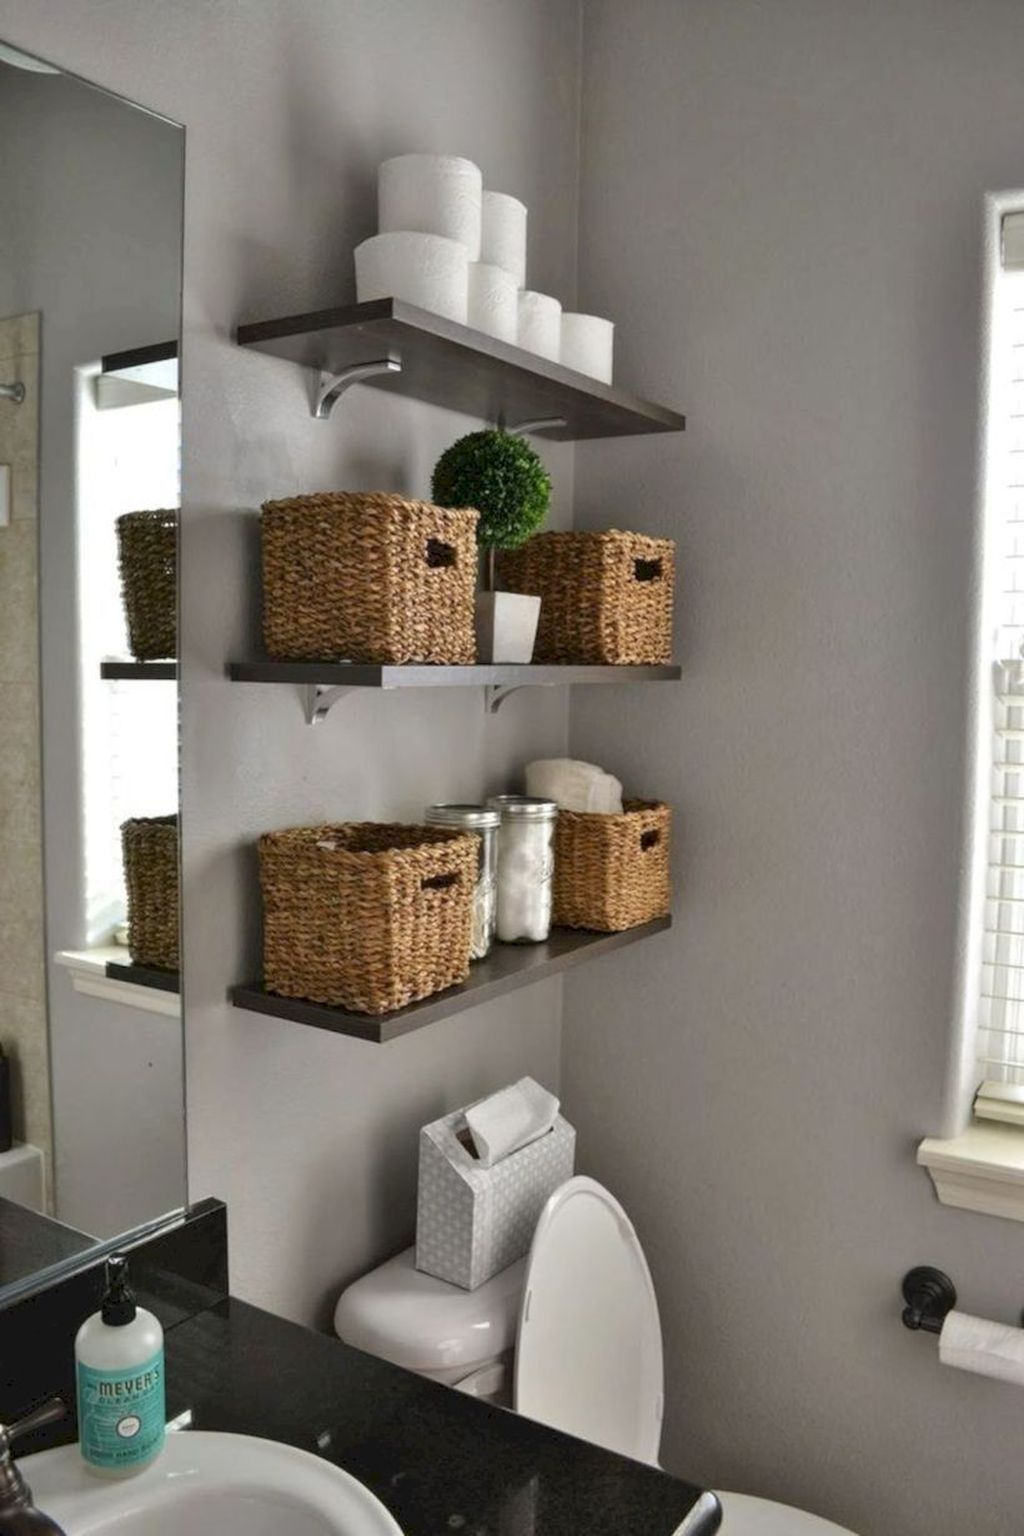 Amazing Bathroom Storage Design Ideas For Small Space 34